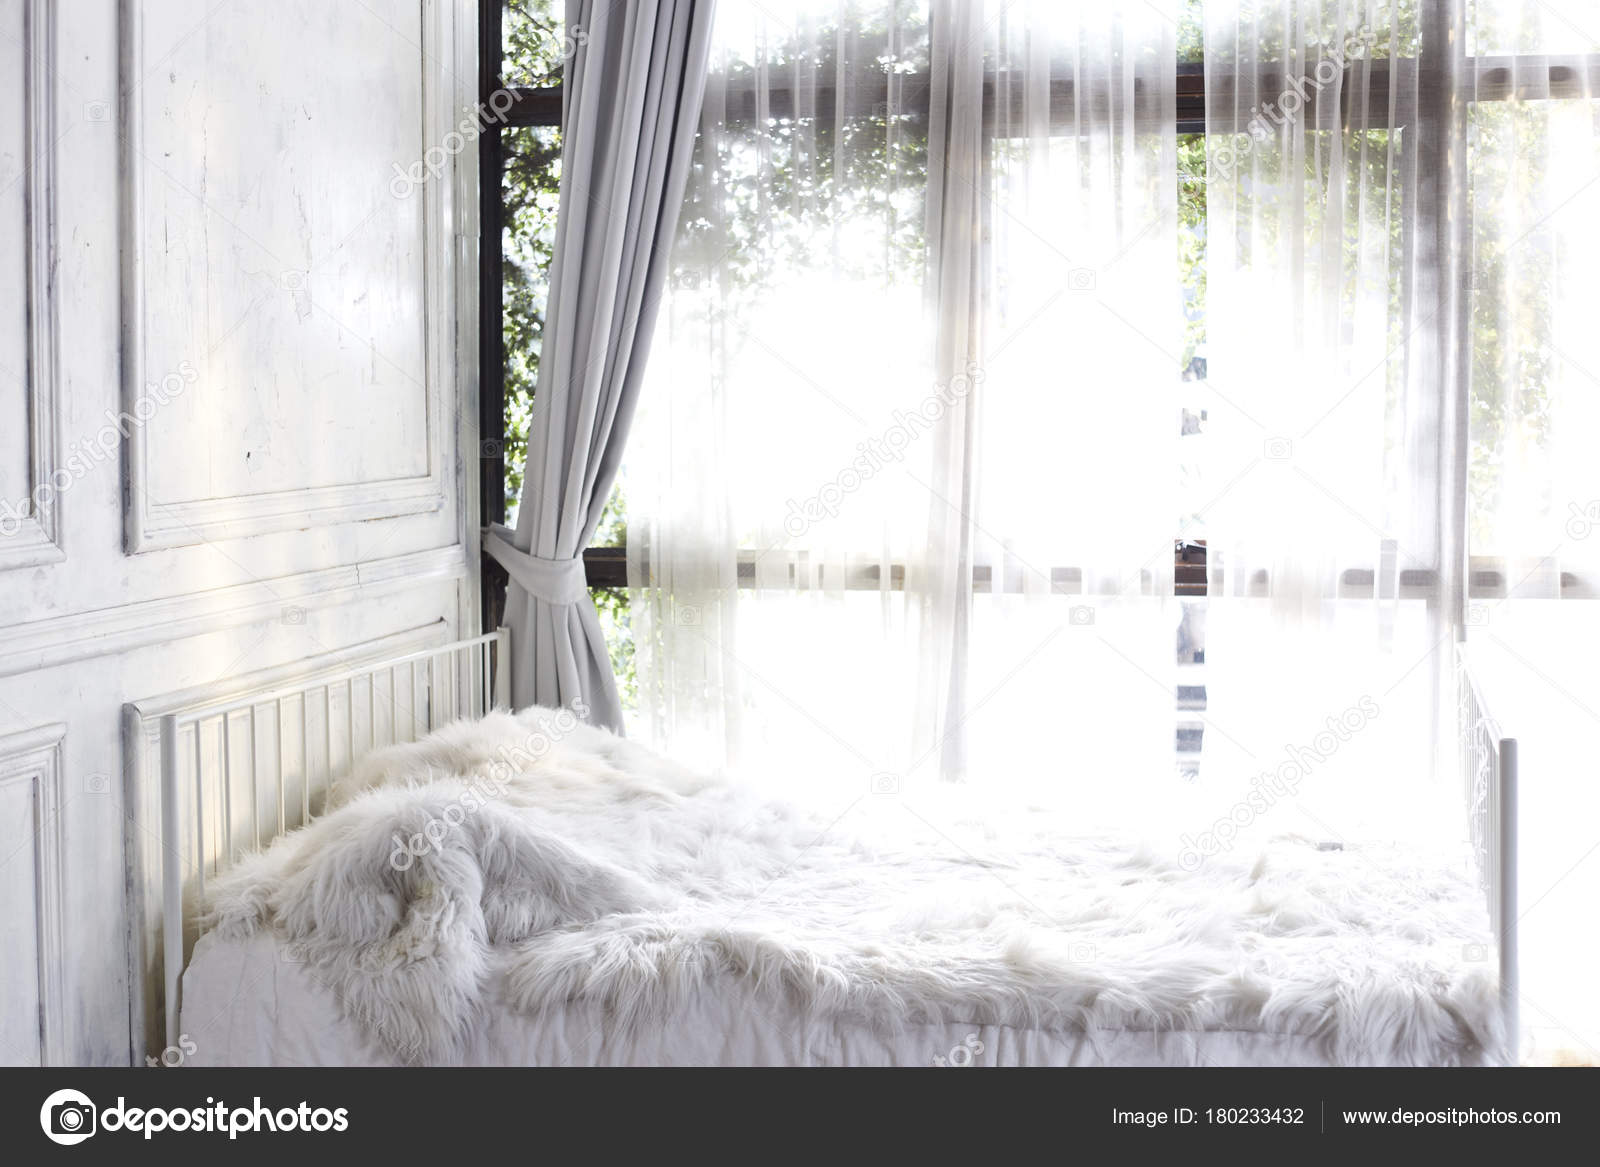 Picture of: Pictures Curtains Bay Windows White Bedroom Bay Window Curtain Stock Photo C Pongans68 Gmail Com 180233432